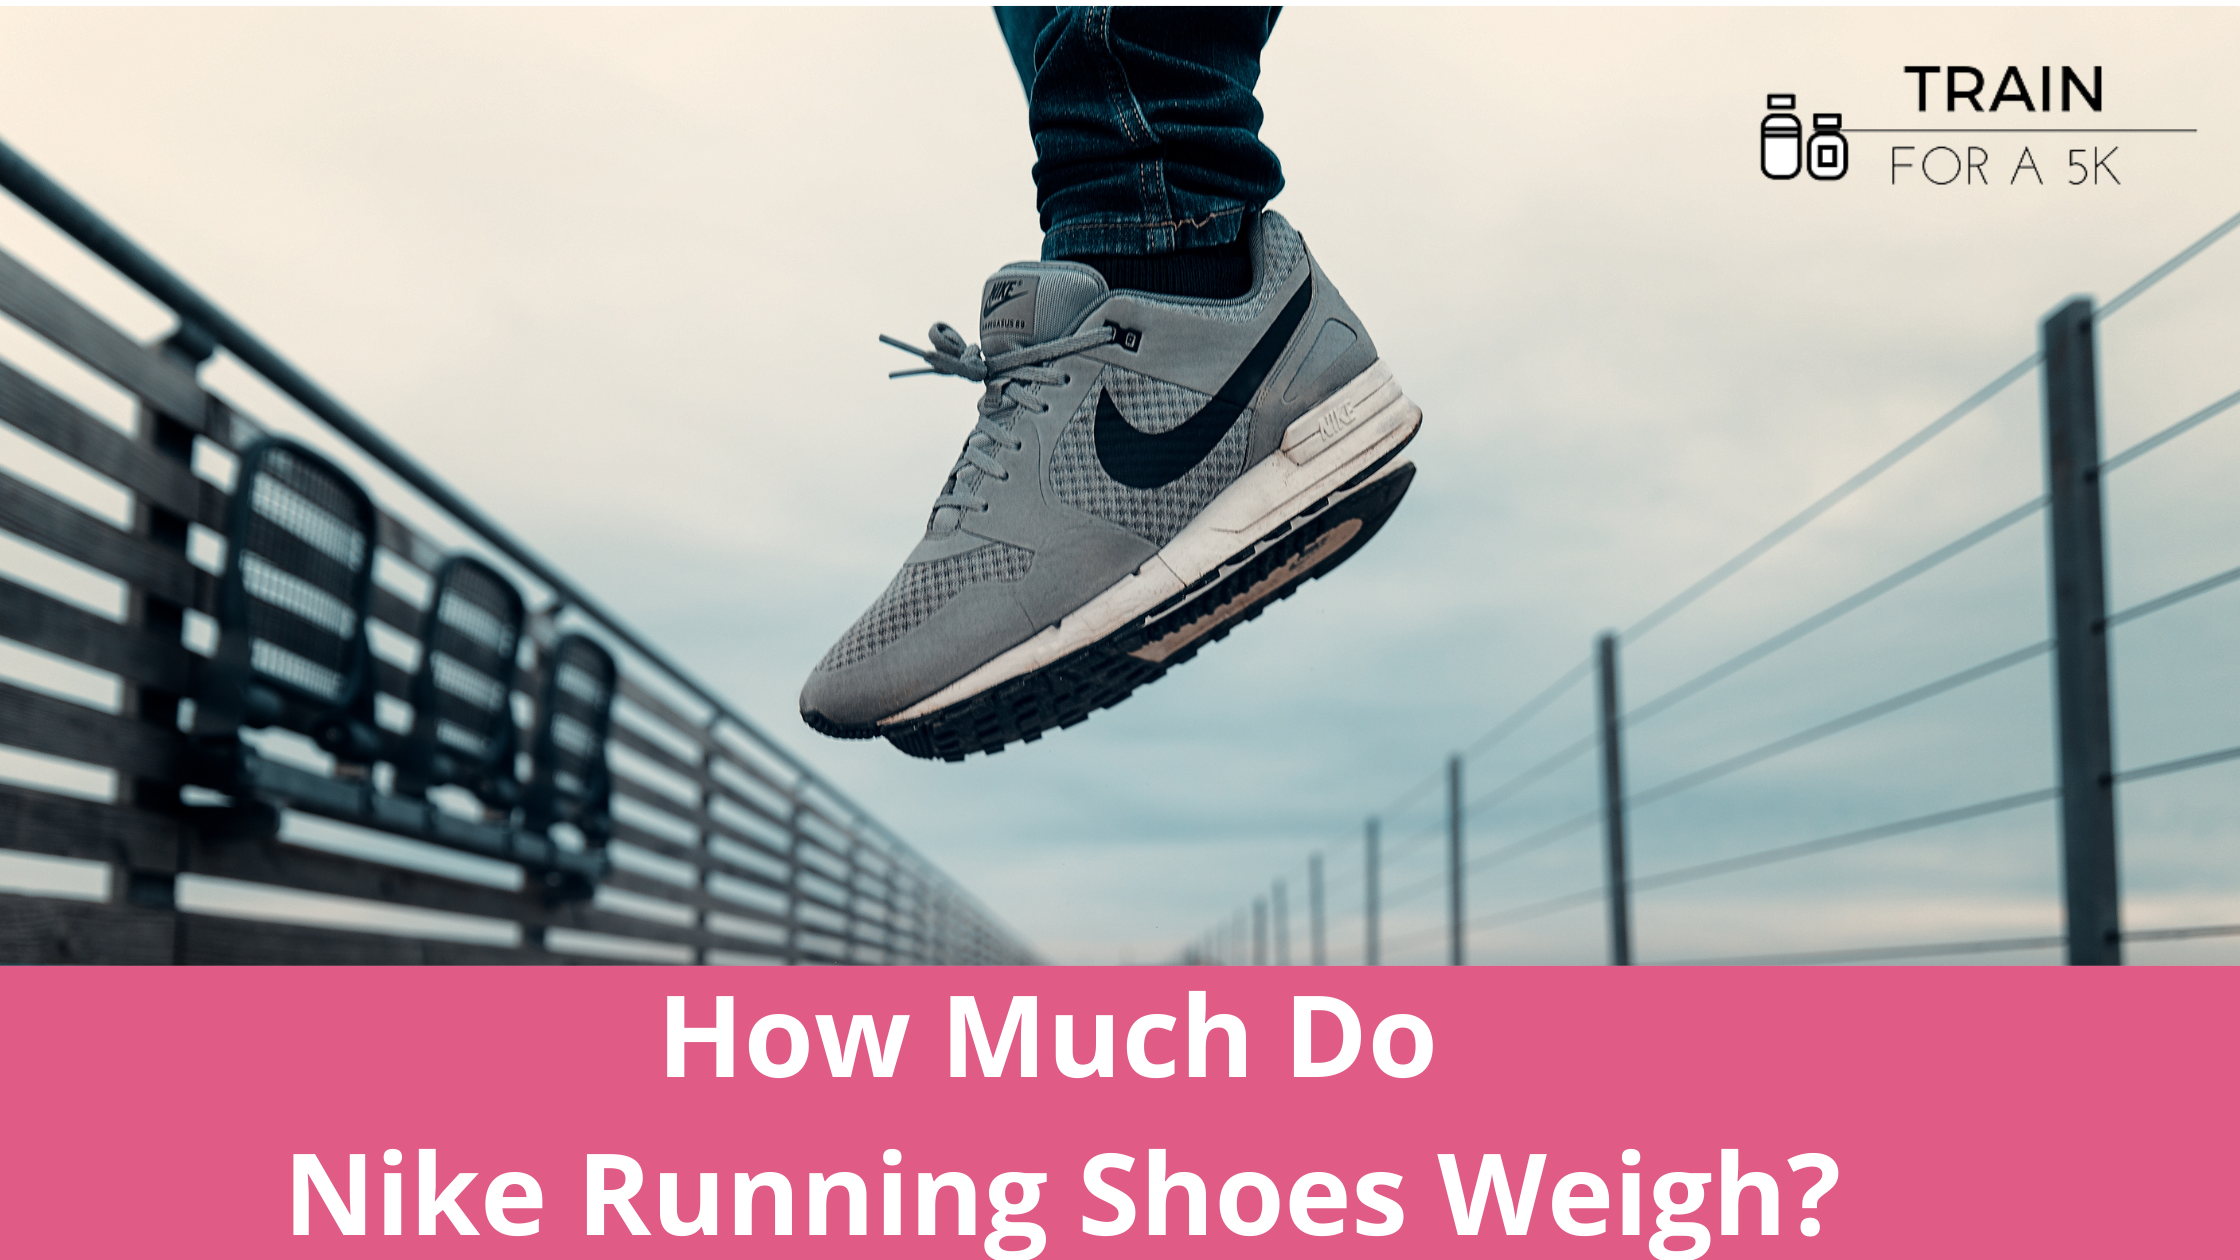 The average weight of a Nike running shoe is 9.4 ounces in men's and 8.1 ounces in women's. The heaviest Nike running shoe is the React Miler and the lightest is the Vaporfly Next%.